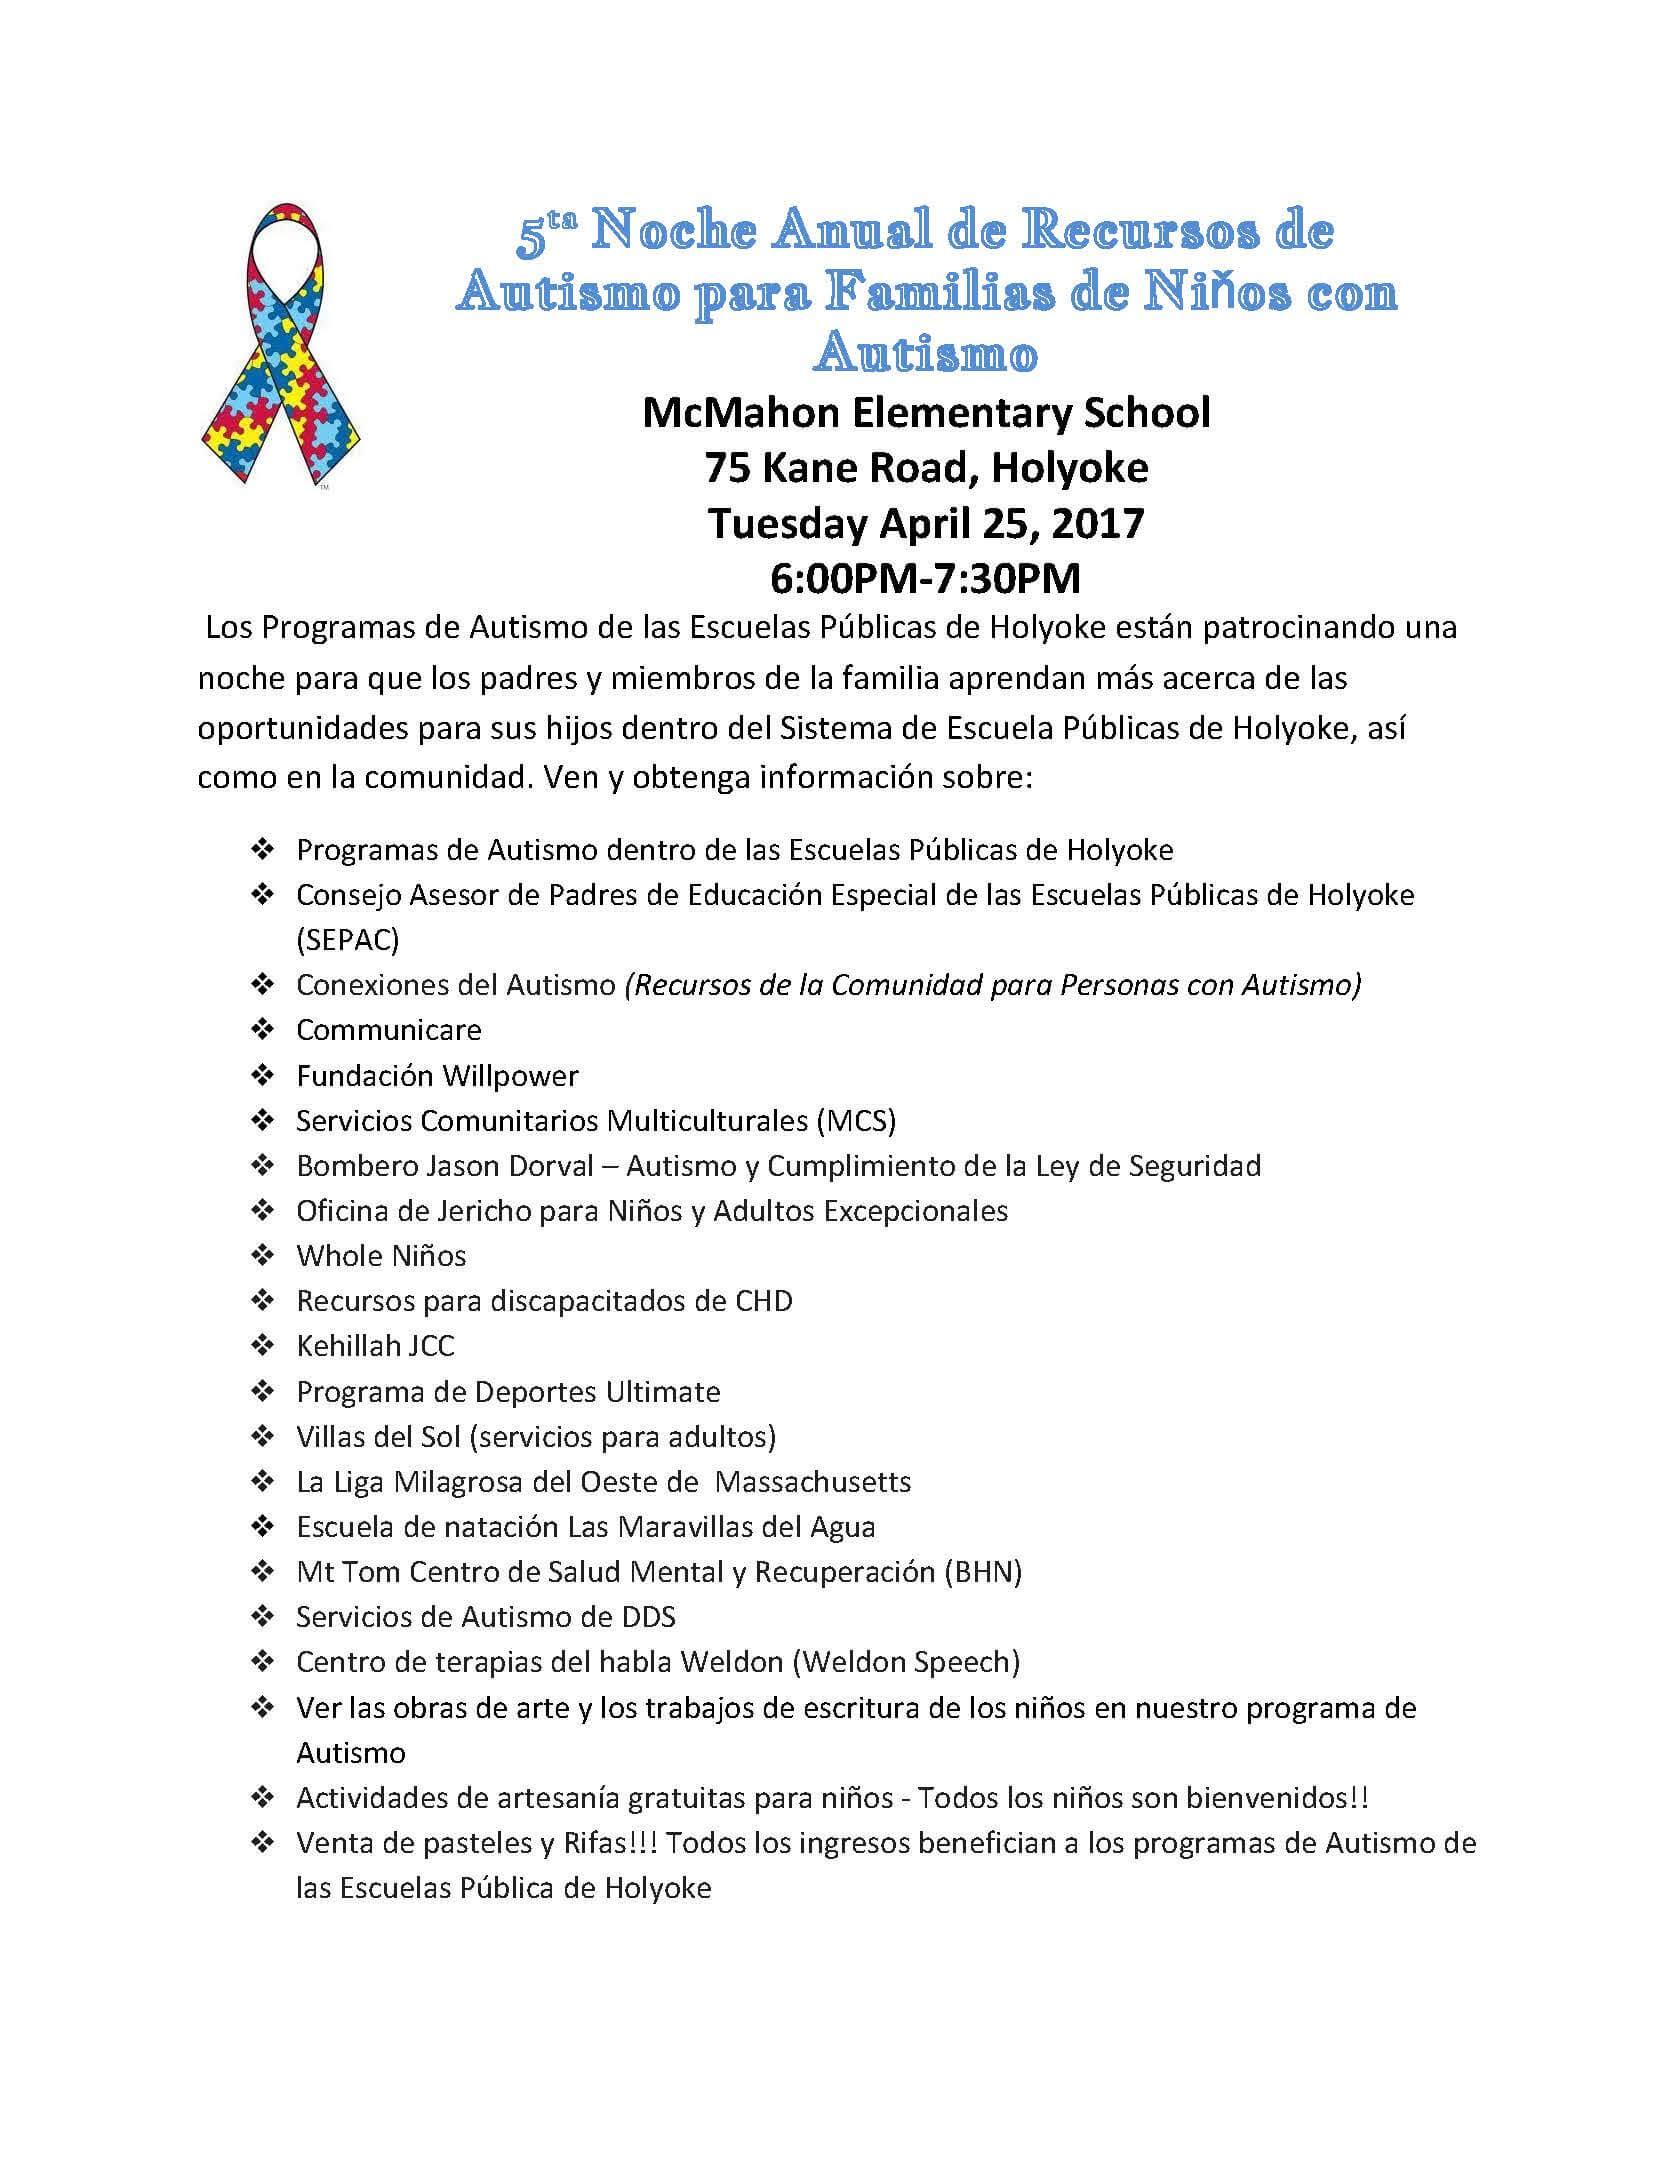 autism resource night spanish